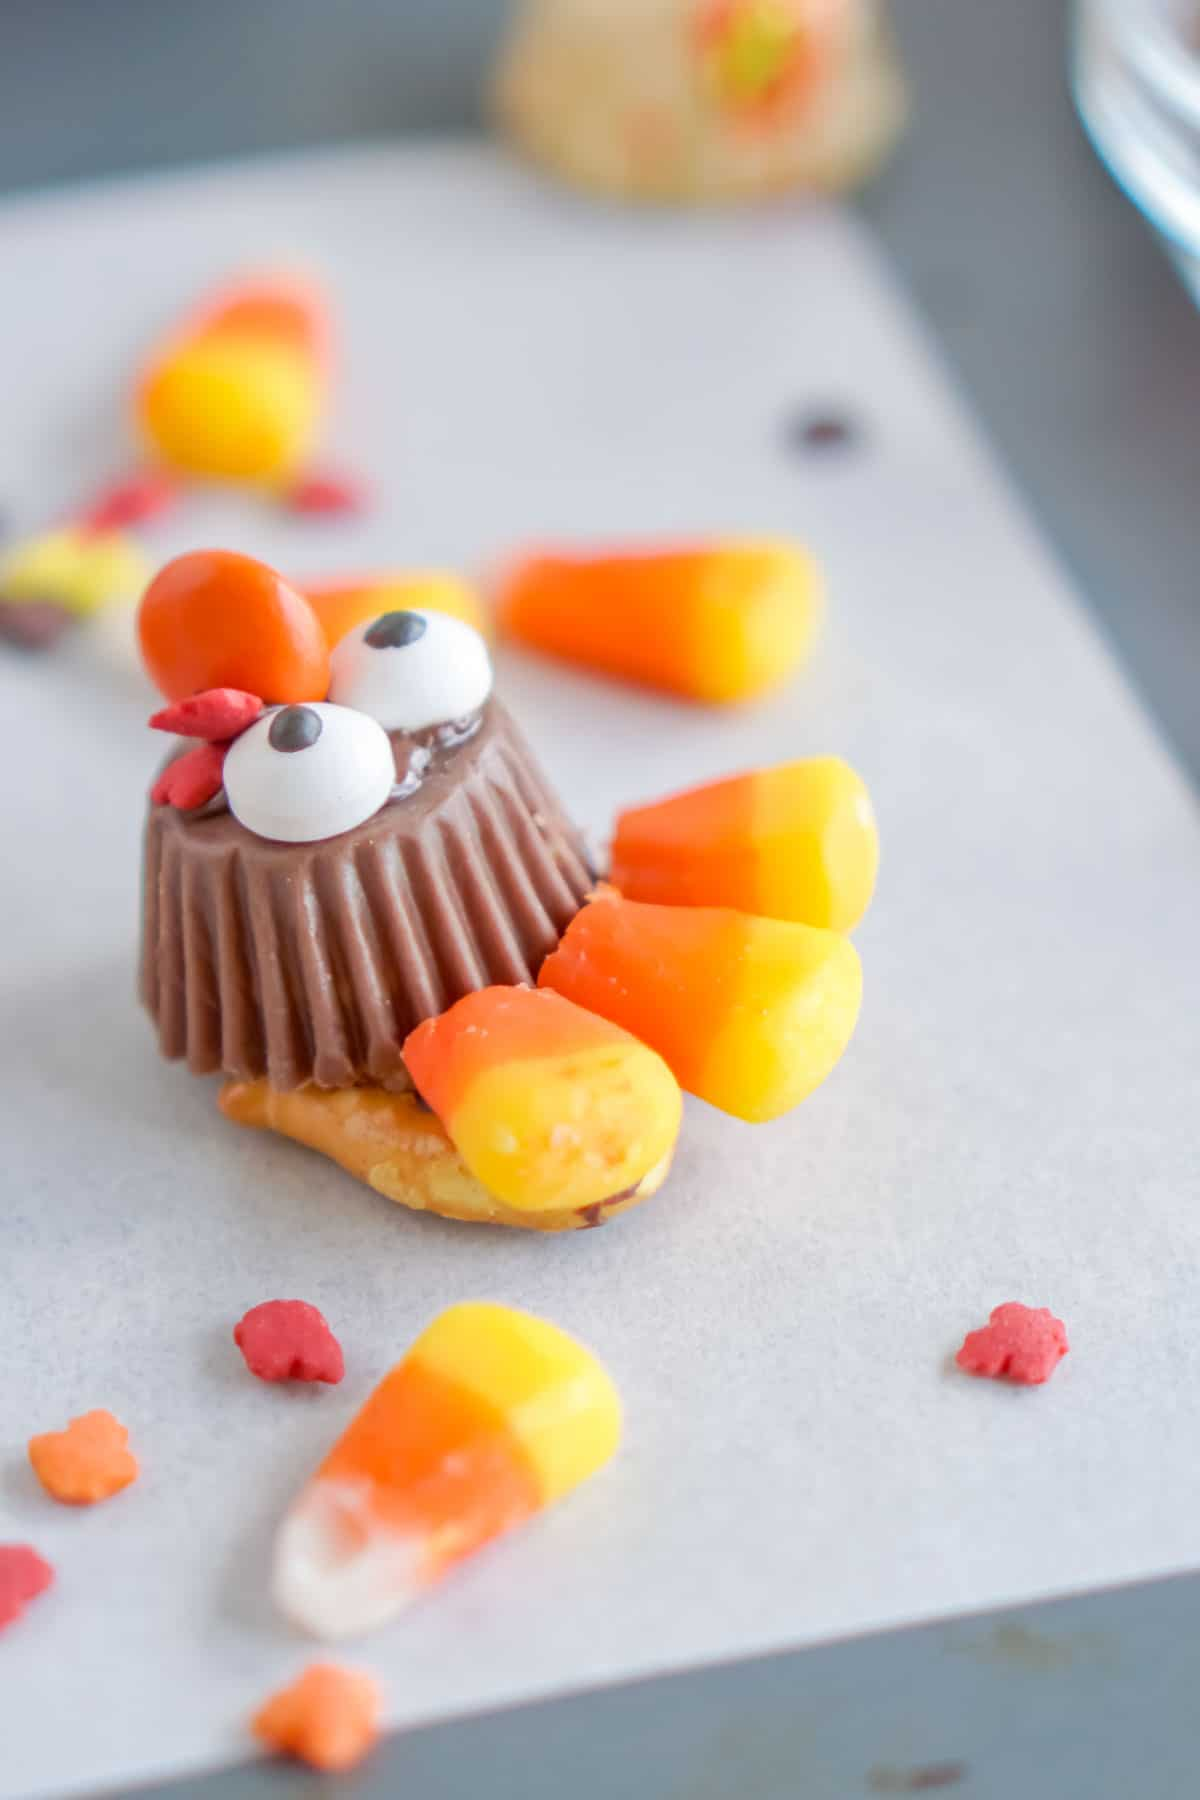 Chocolate turkey with candy corn being added